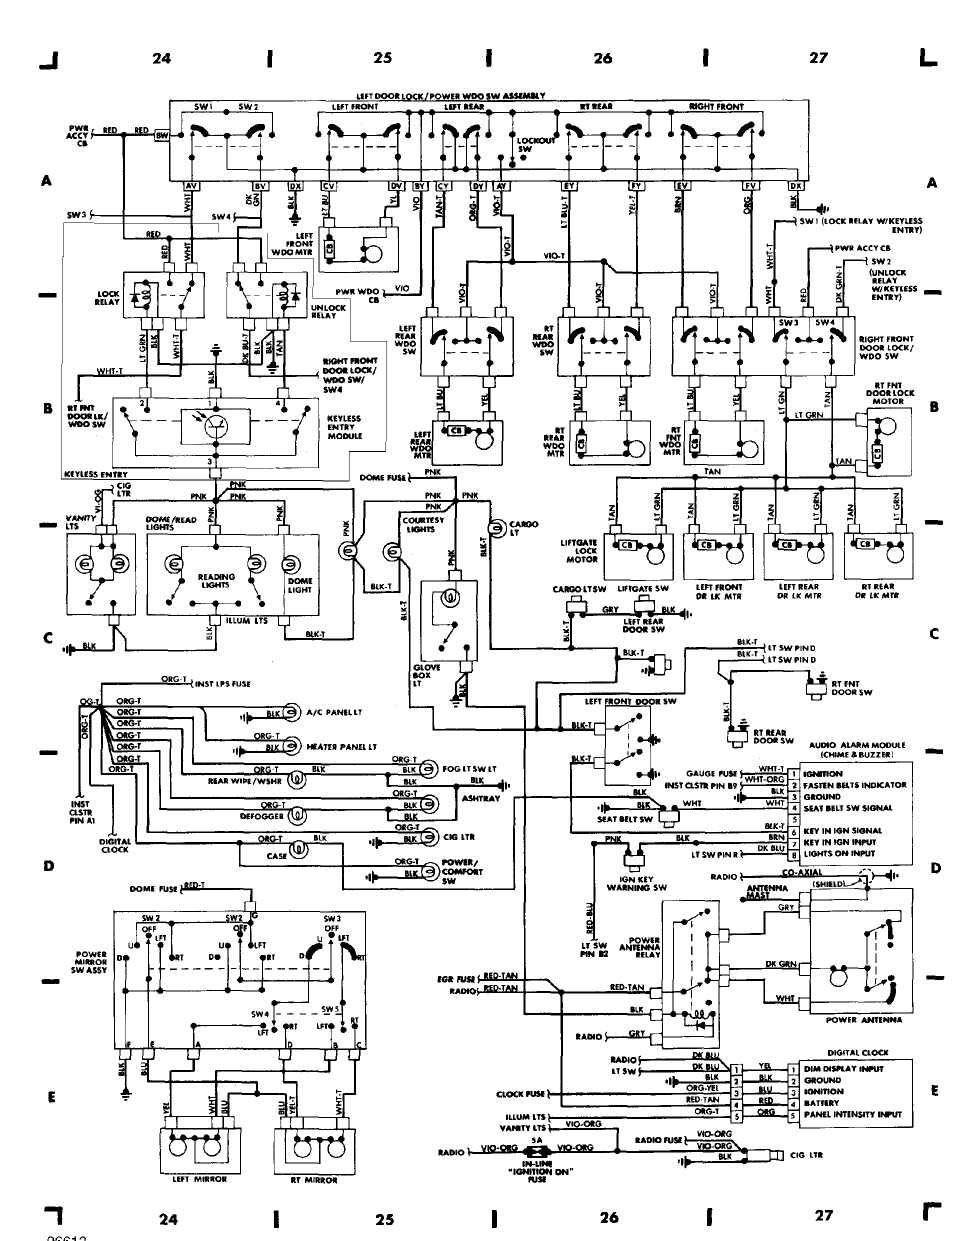 wiring_diagrams_html_61f5e0ad wiring diagrams 1984 1991 jeep cherokee (xj) jeep 2001 jeep grand cherokee wiring diagram at alyssarenee.co